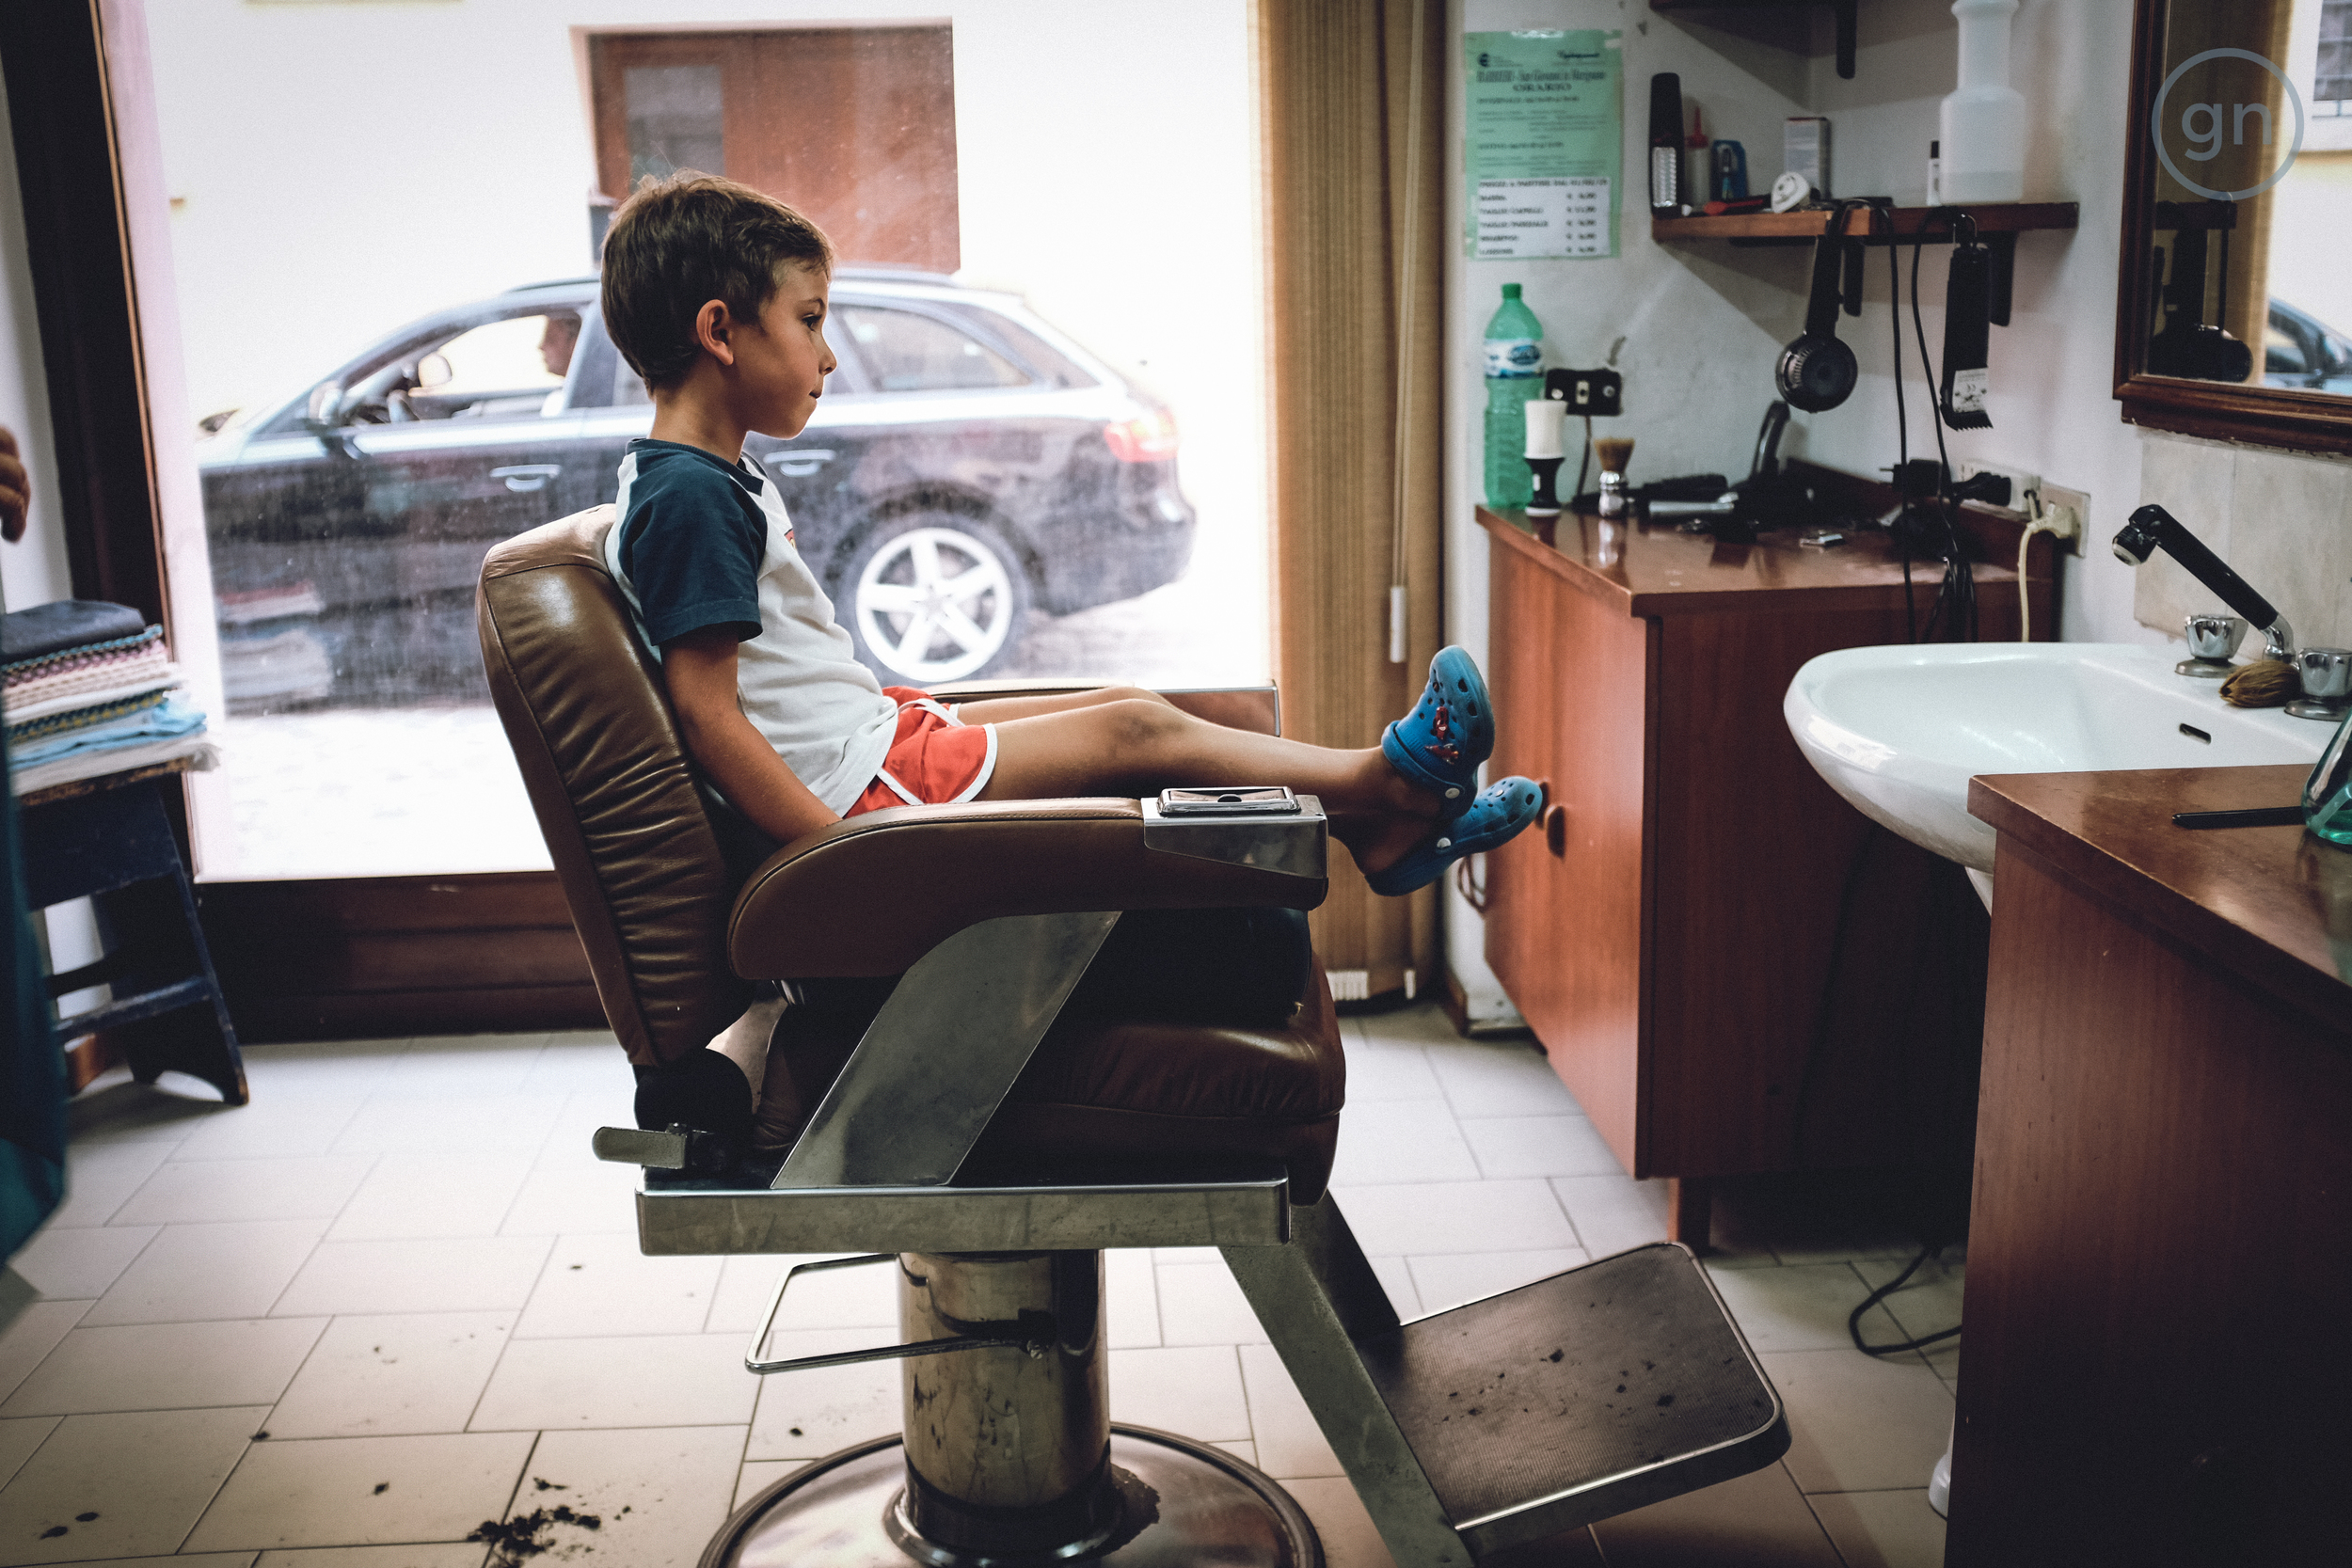 Testin Fuji X100T at the Barber shop